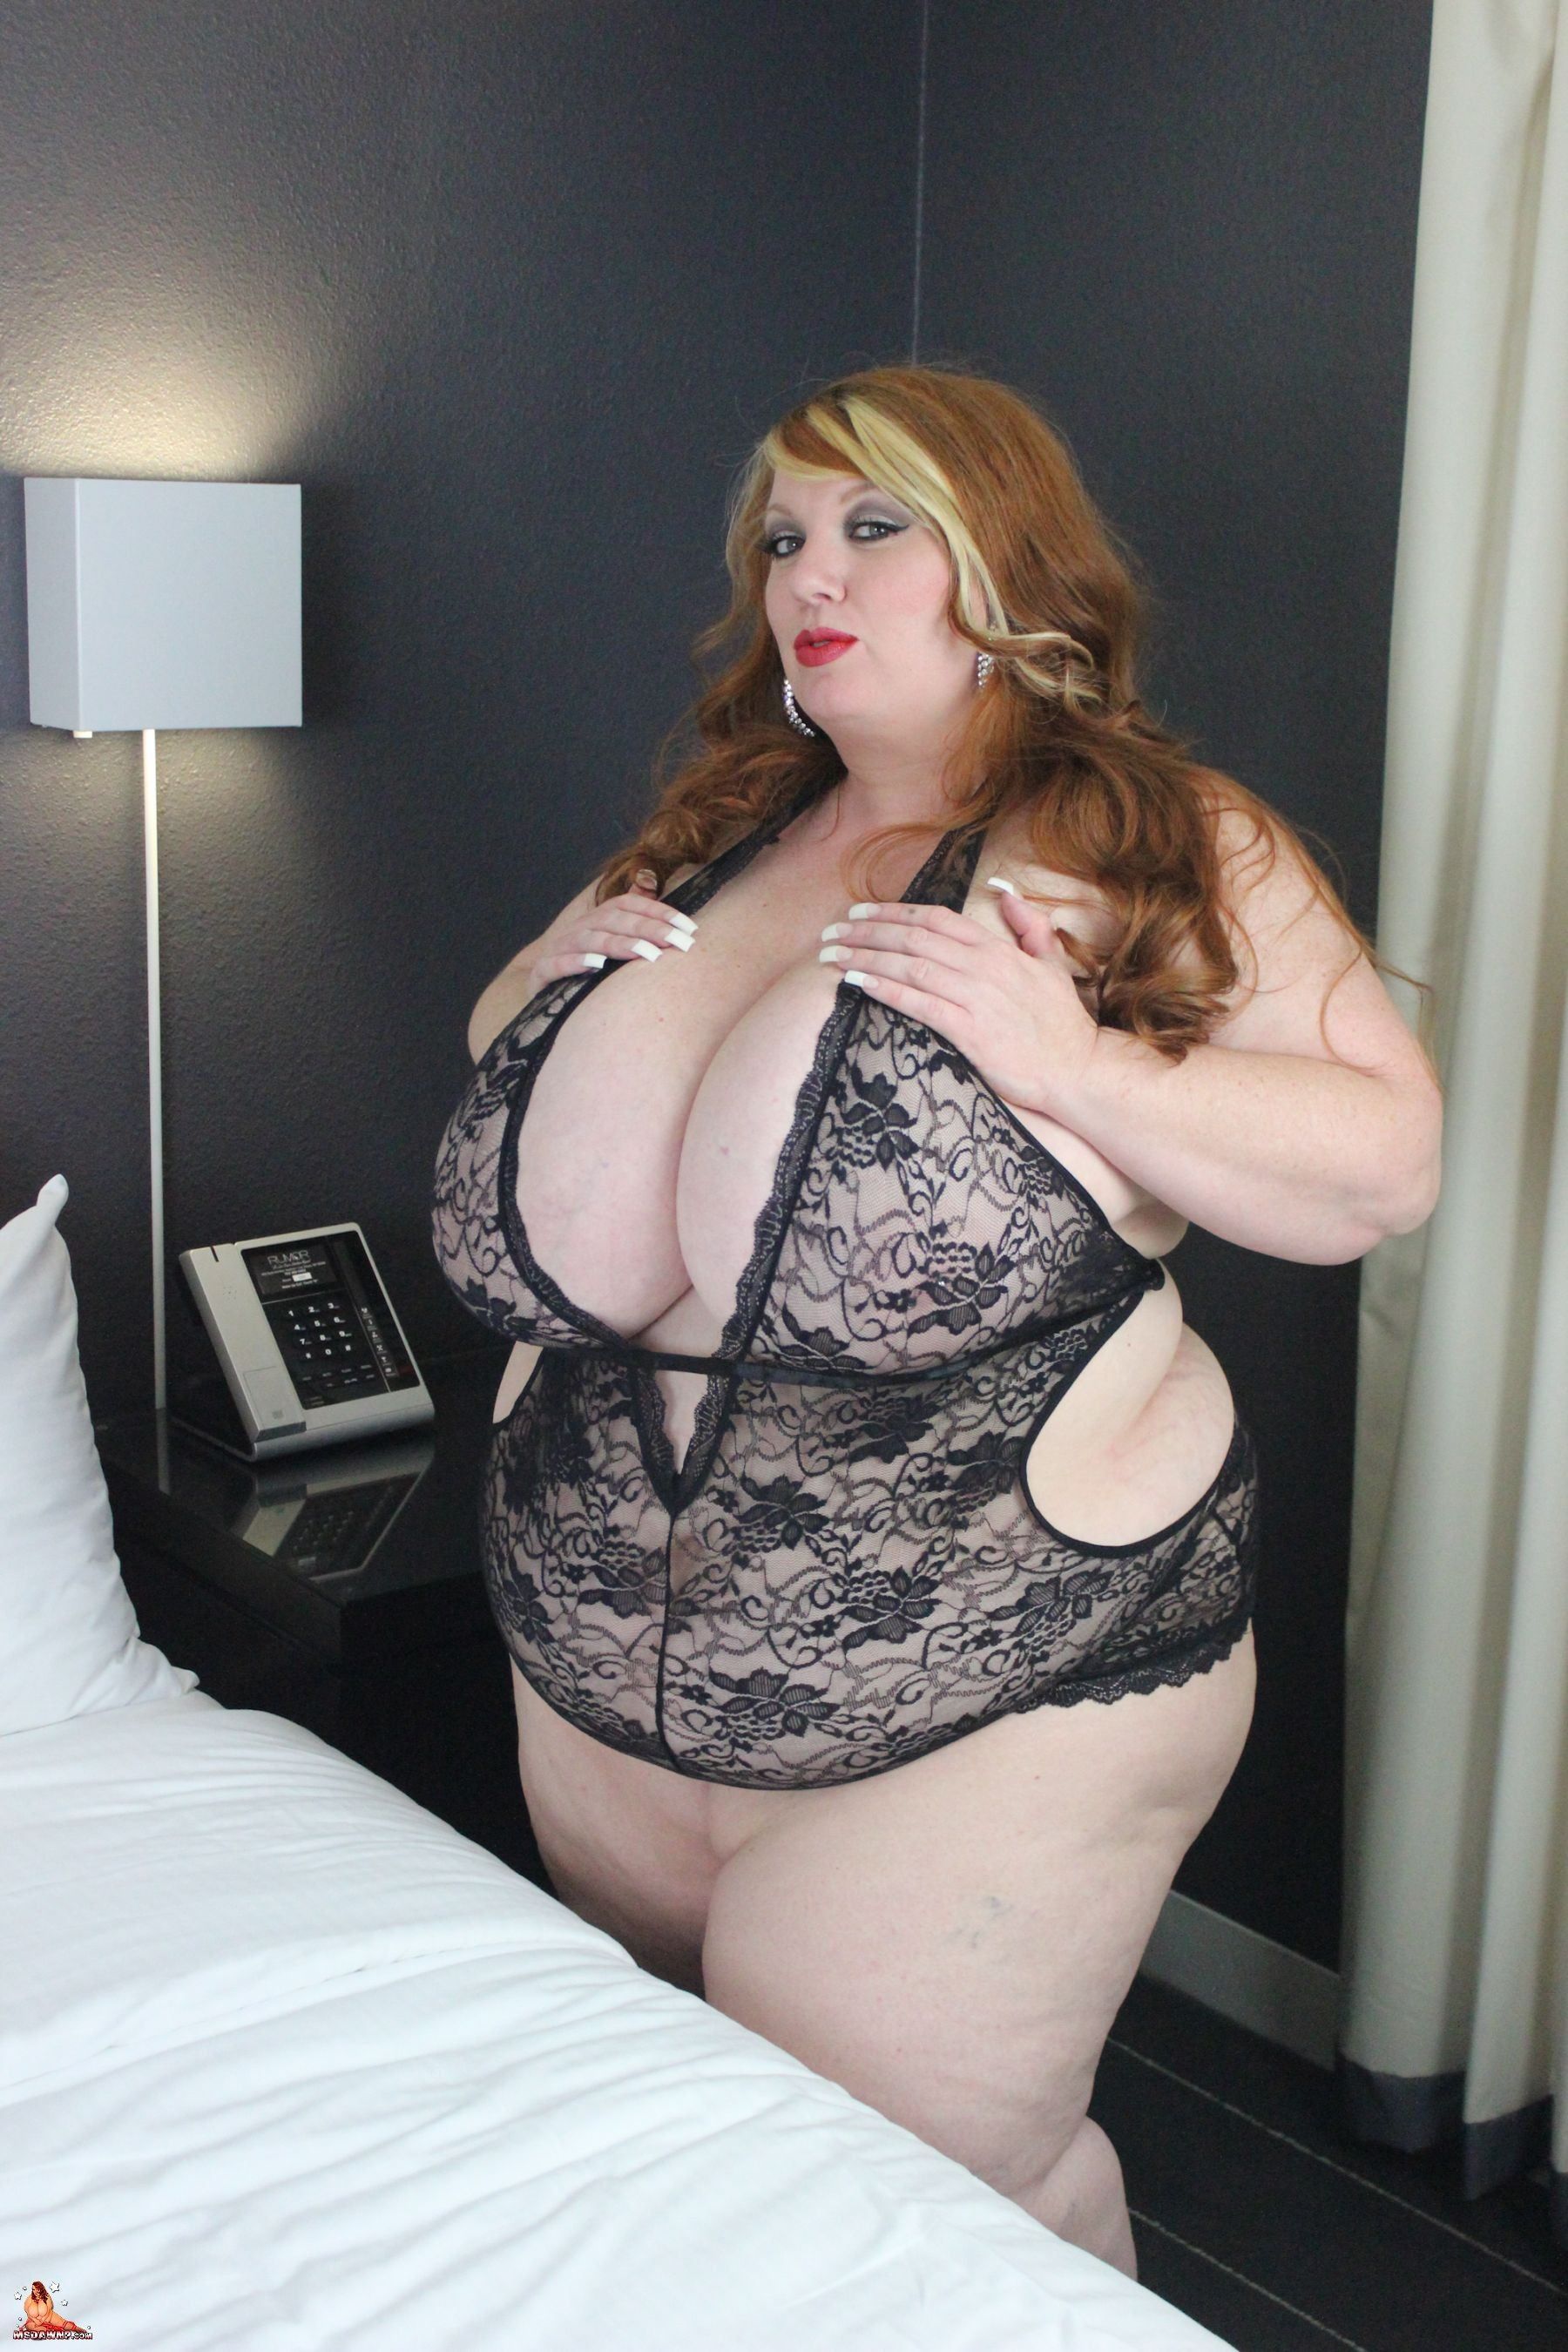 bbw ssbbw big girls fat girls big boobs big tits big booty ...